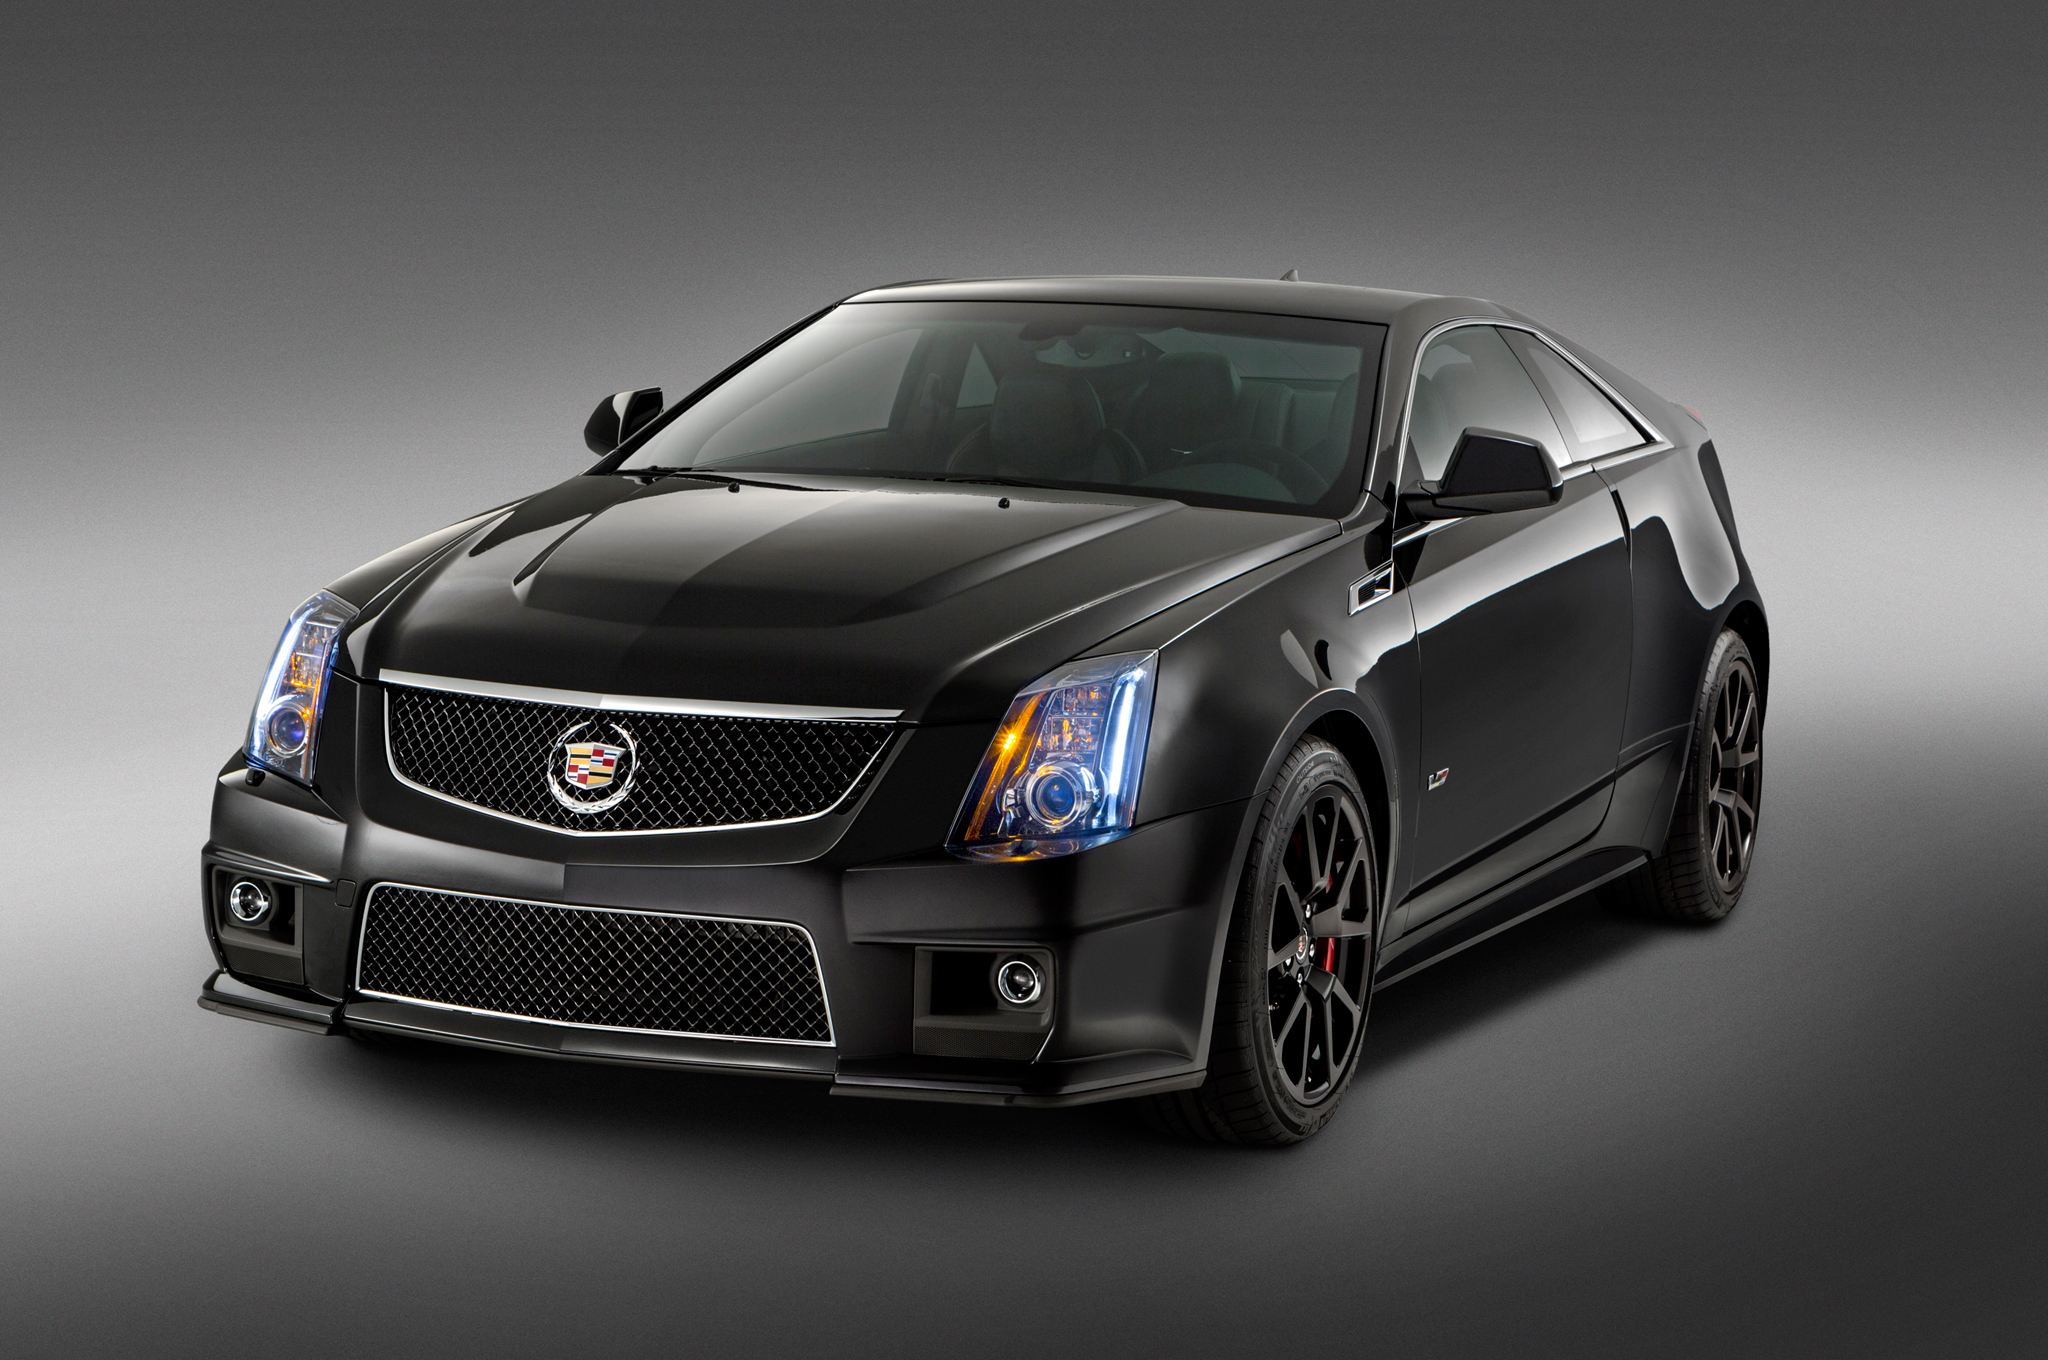 2015 Cadillac CTS-V Coupe Special Edition is a Stylish Send-Off